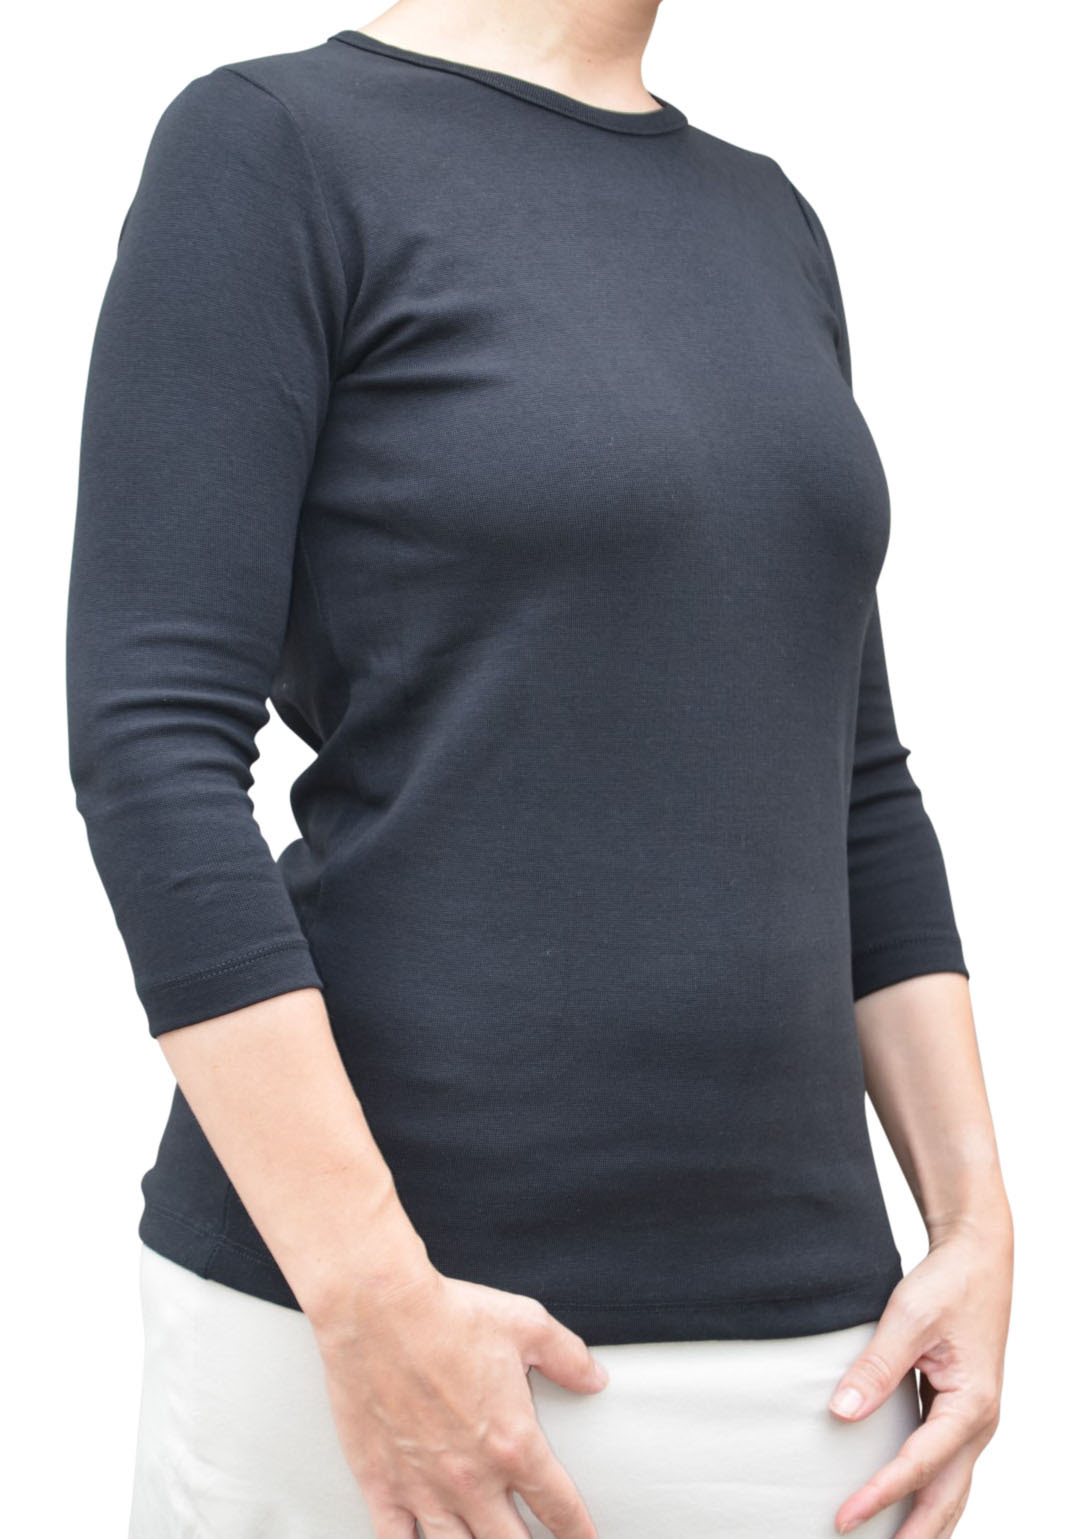 297a82623 Buy Womens Shell Tops - Womens Modest Clothing. Modern, Yet Modest ...